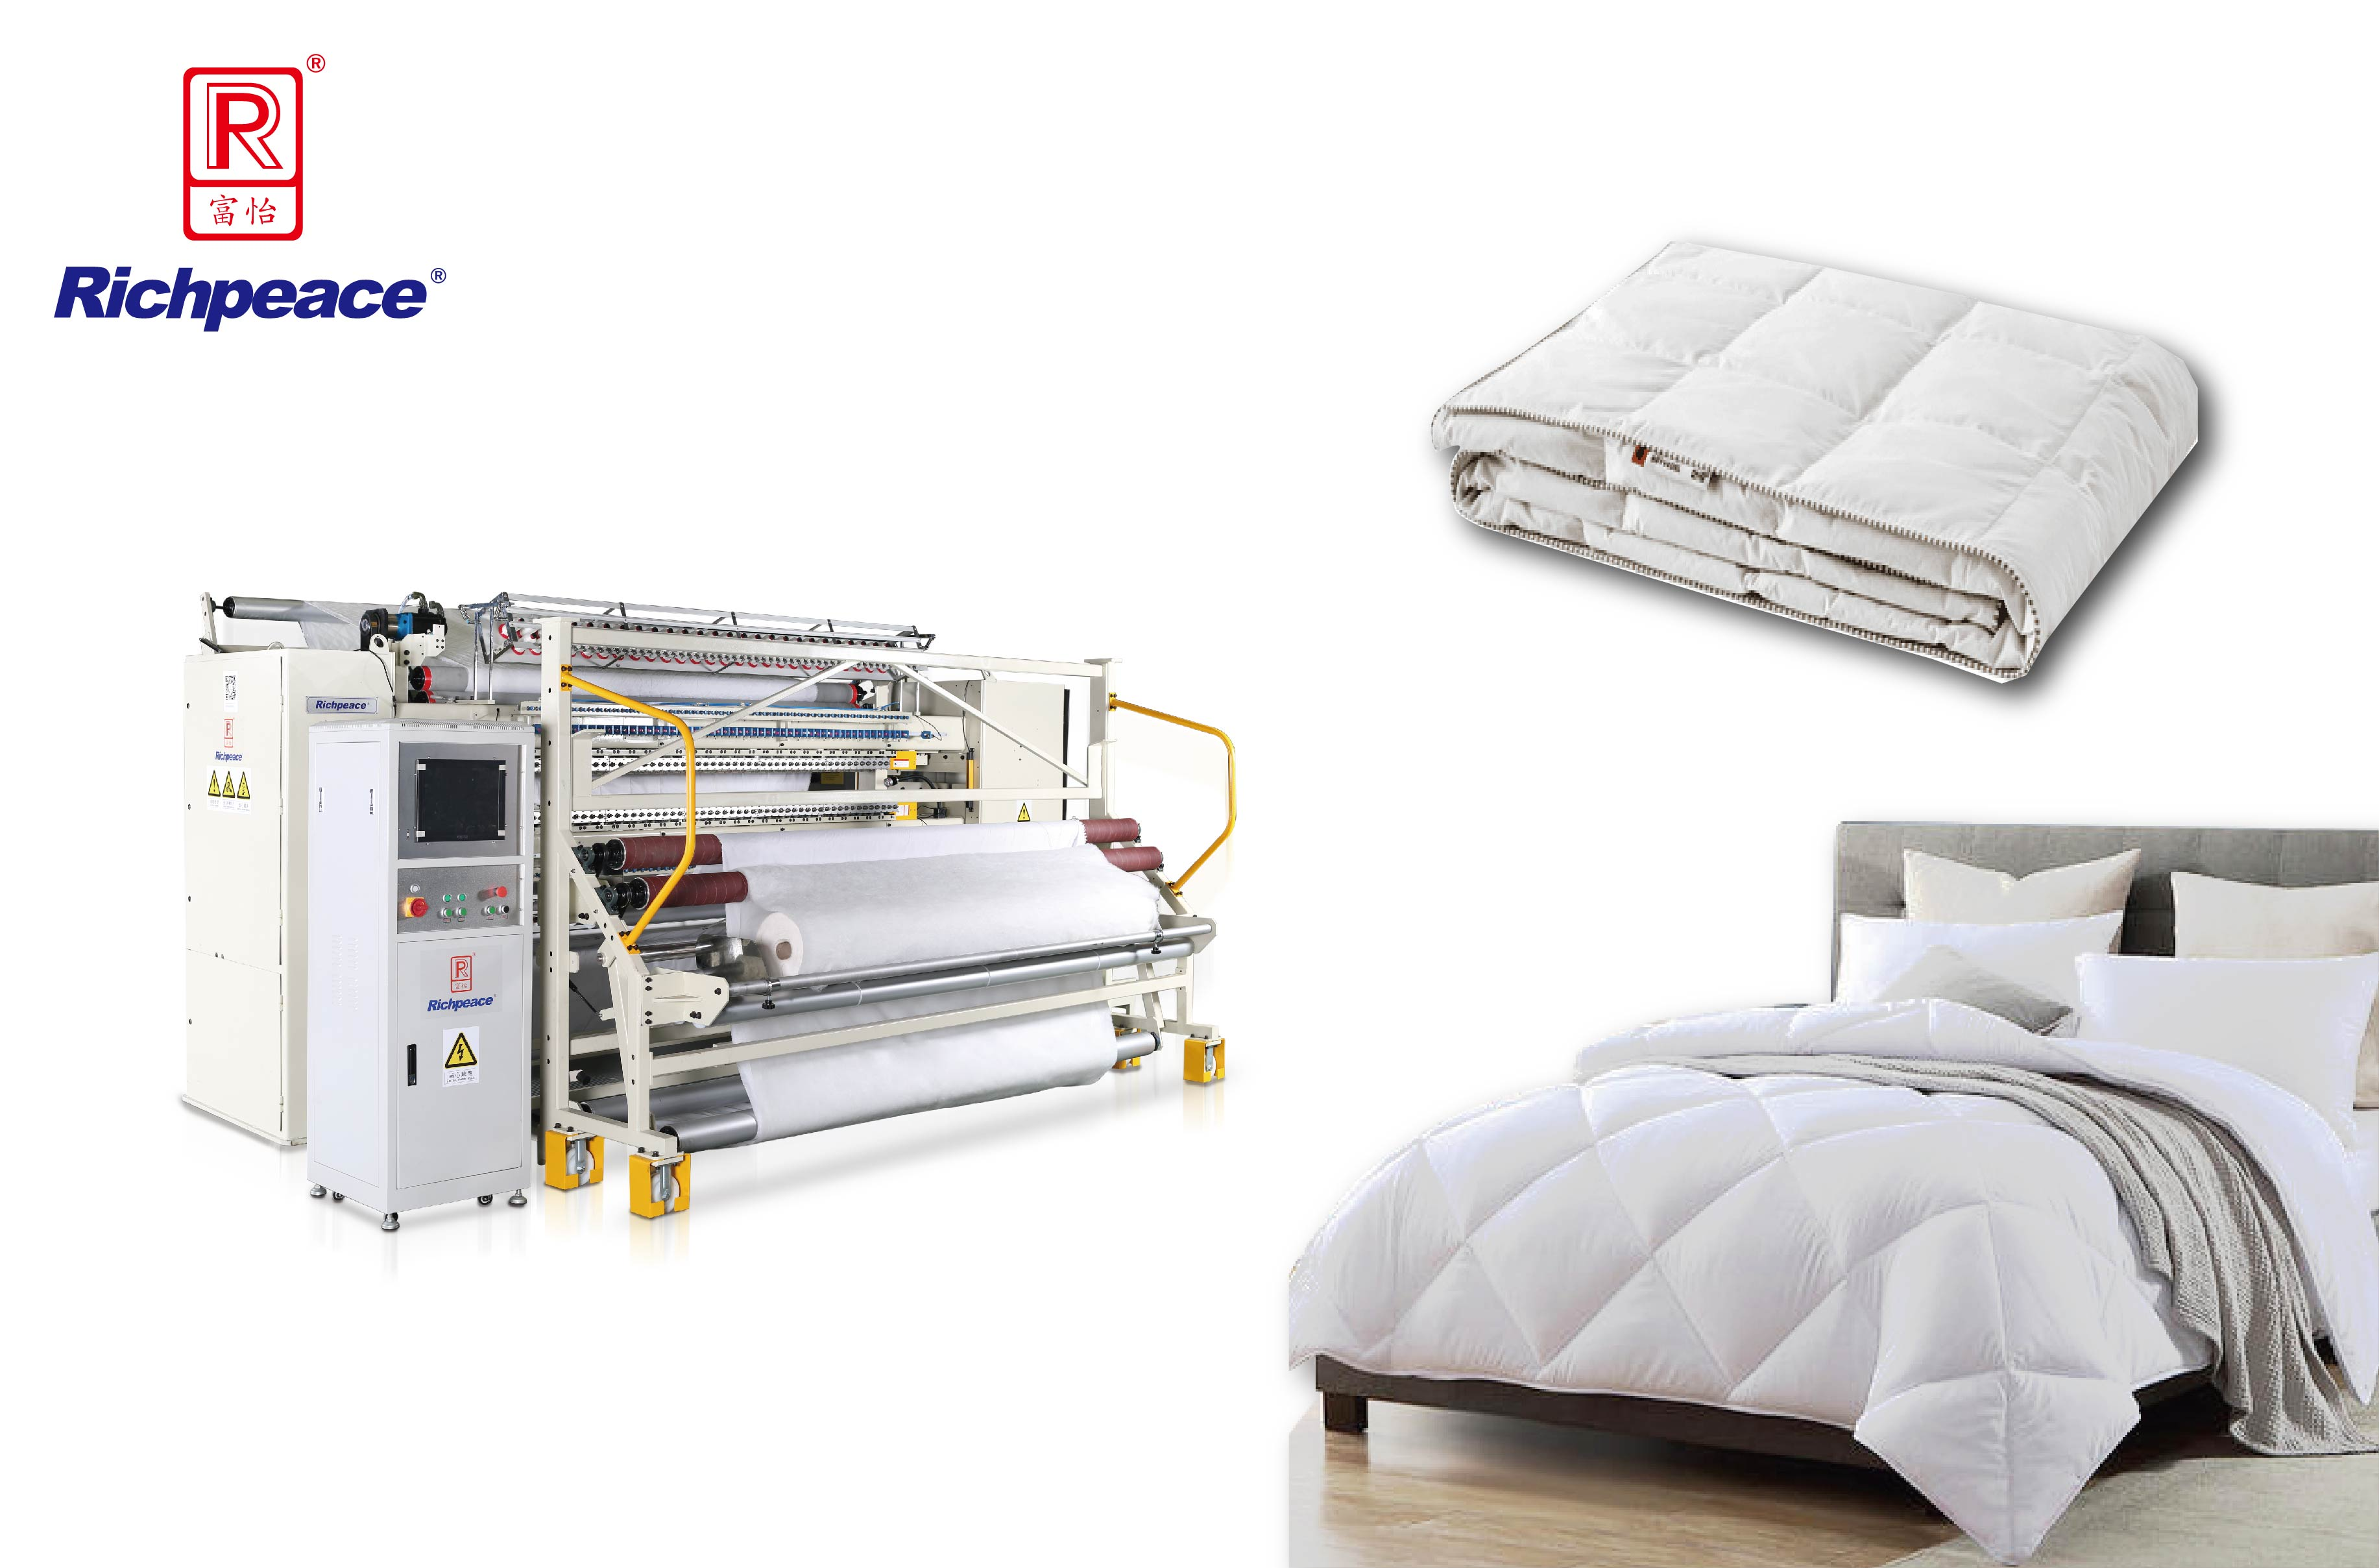 Richpeace L1500 High-speed Multi-needle Quilting Machine